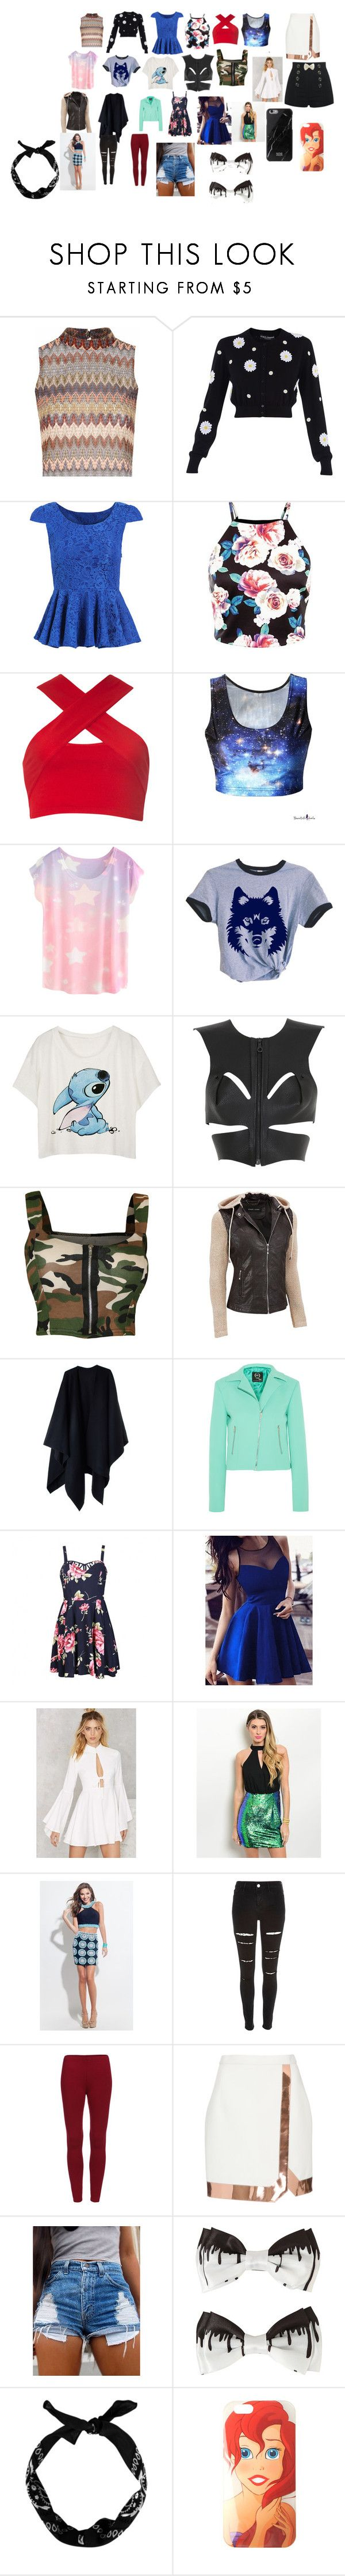 """""""Clothes"""" by blonde ❤ liked on Polyvore featuring Glamorous, Dolce&Gabbana, Motel, Fleet Ilya, WearAll, Acne Studios, McQ by Alexander McQueen, Ally Fashion, Nasty Gal and Rachel Allan"""